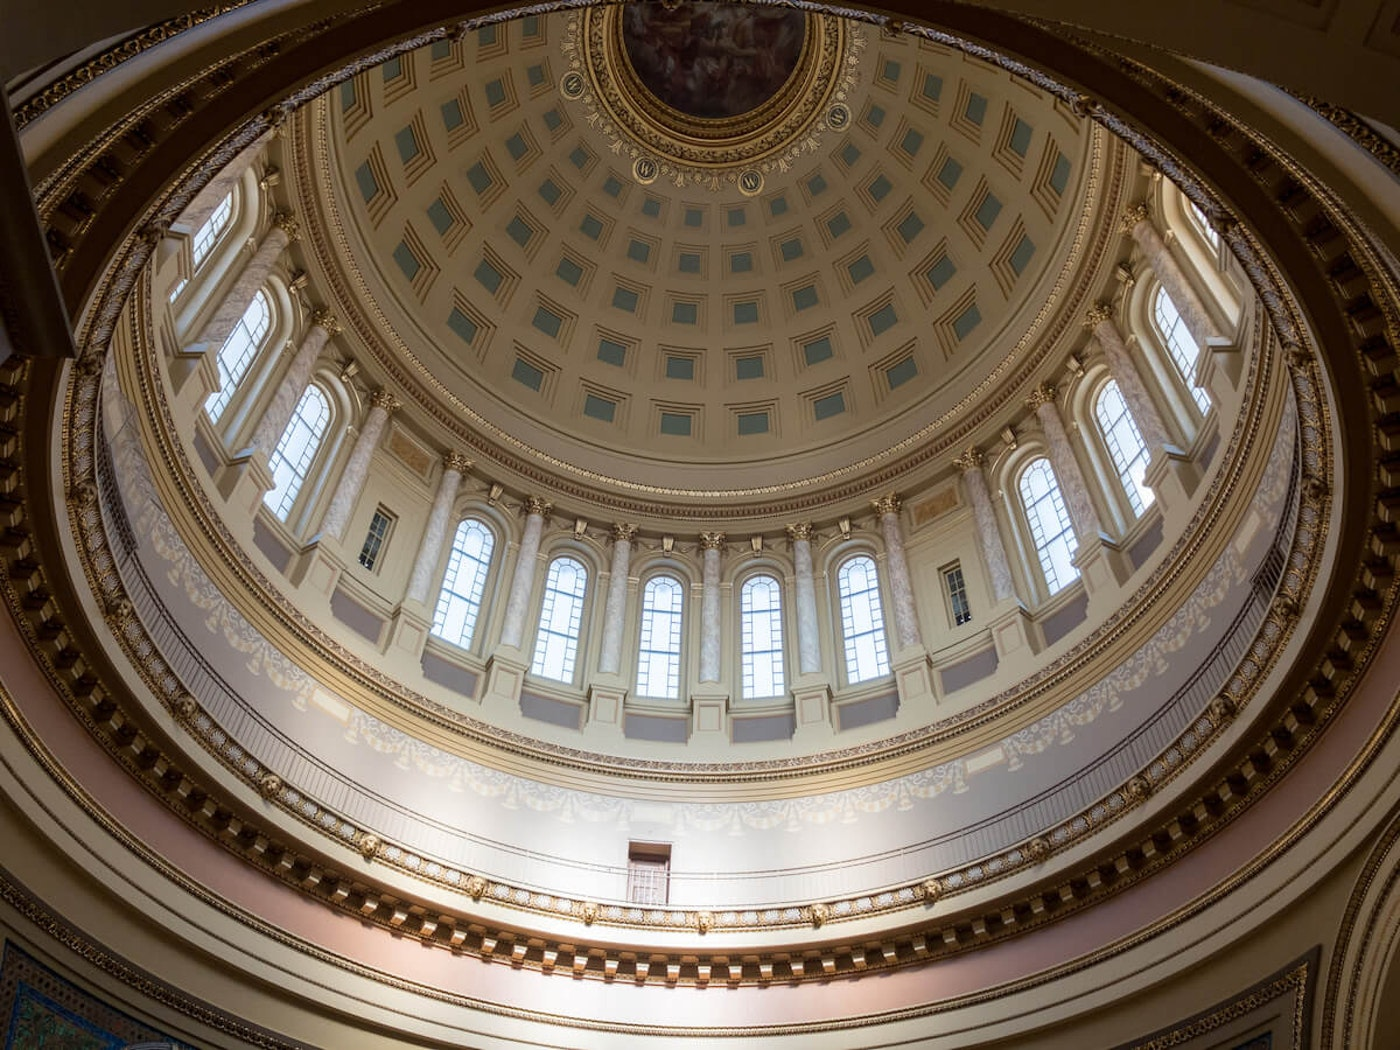 The interior of the Wisconsin state Capitol dome in Madison. (Photo by Christina Lieffring)